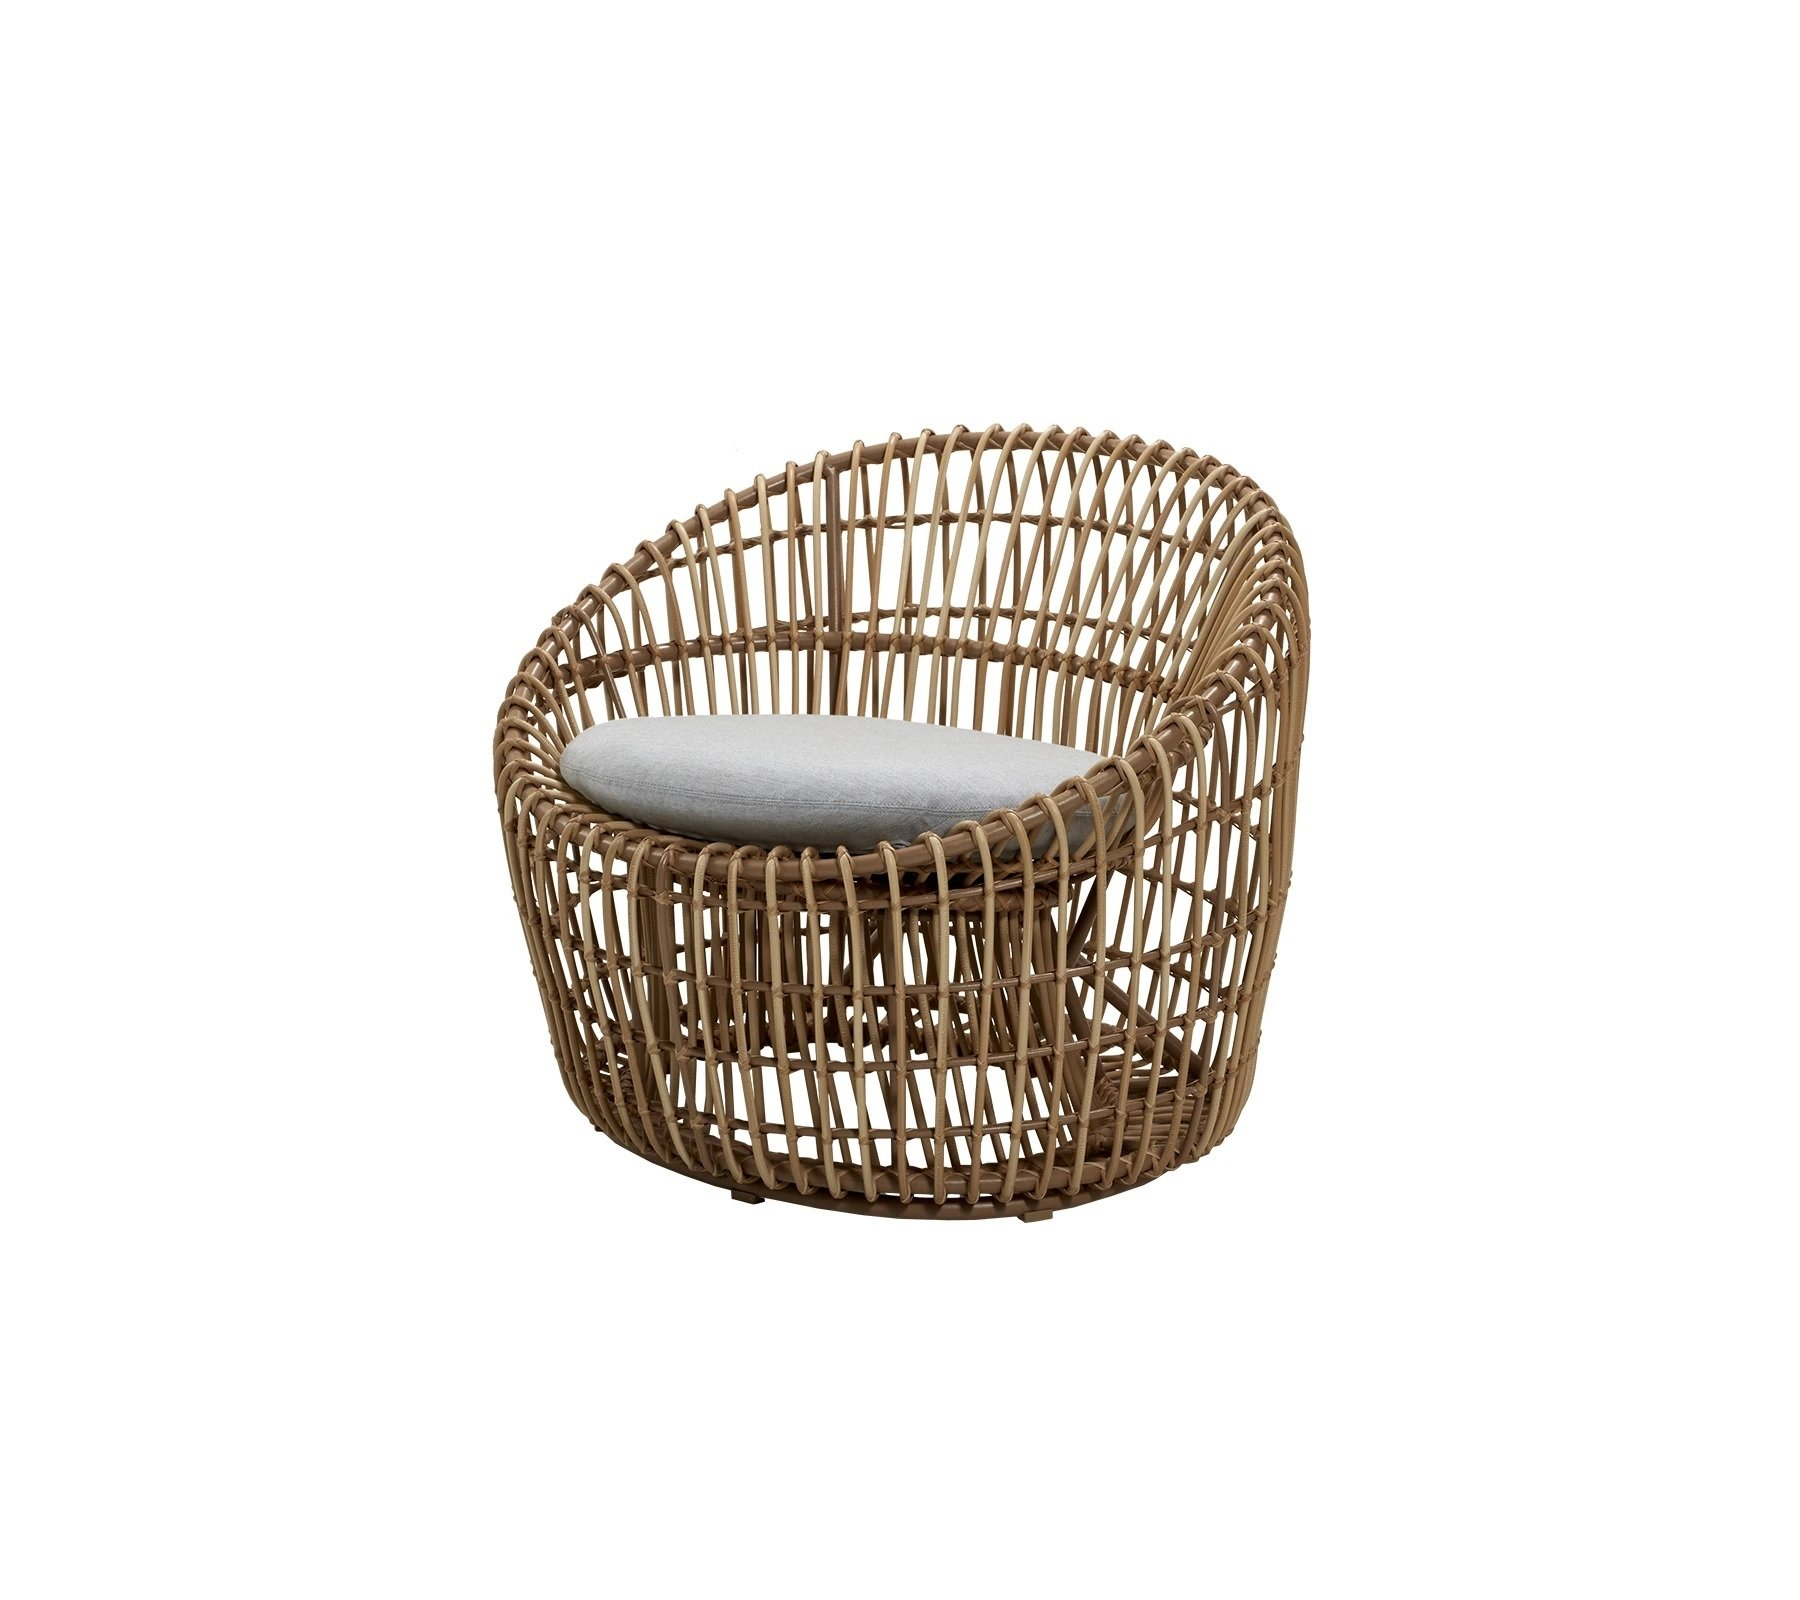 Nest Round Lounge Chair from Cane-line, designed by Foersom & Hiort-Lorenzen MDD